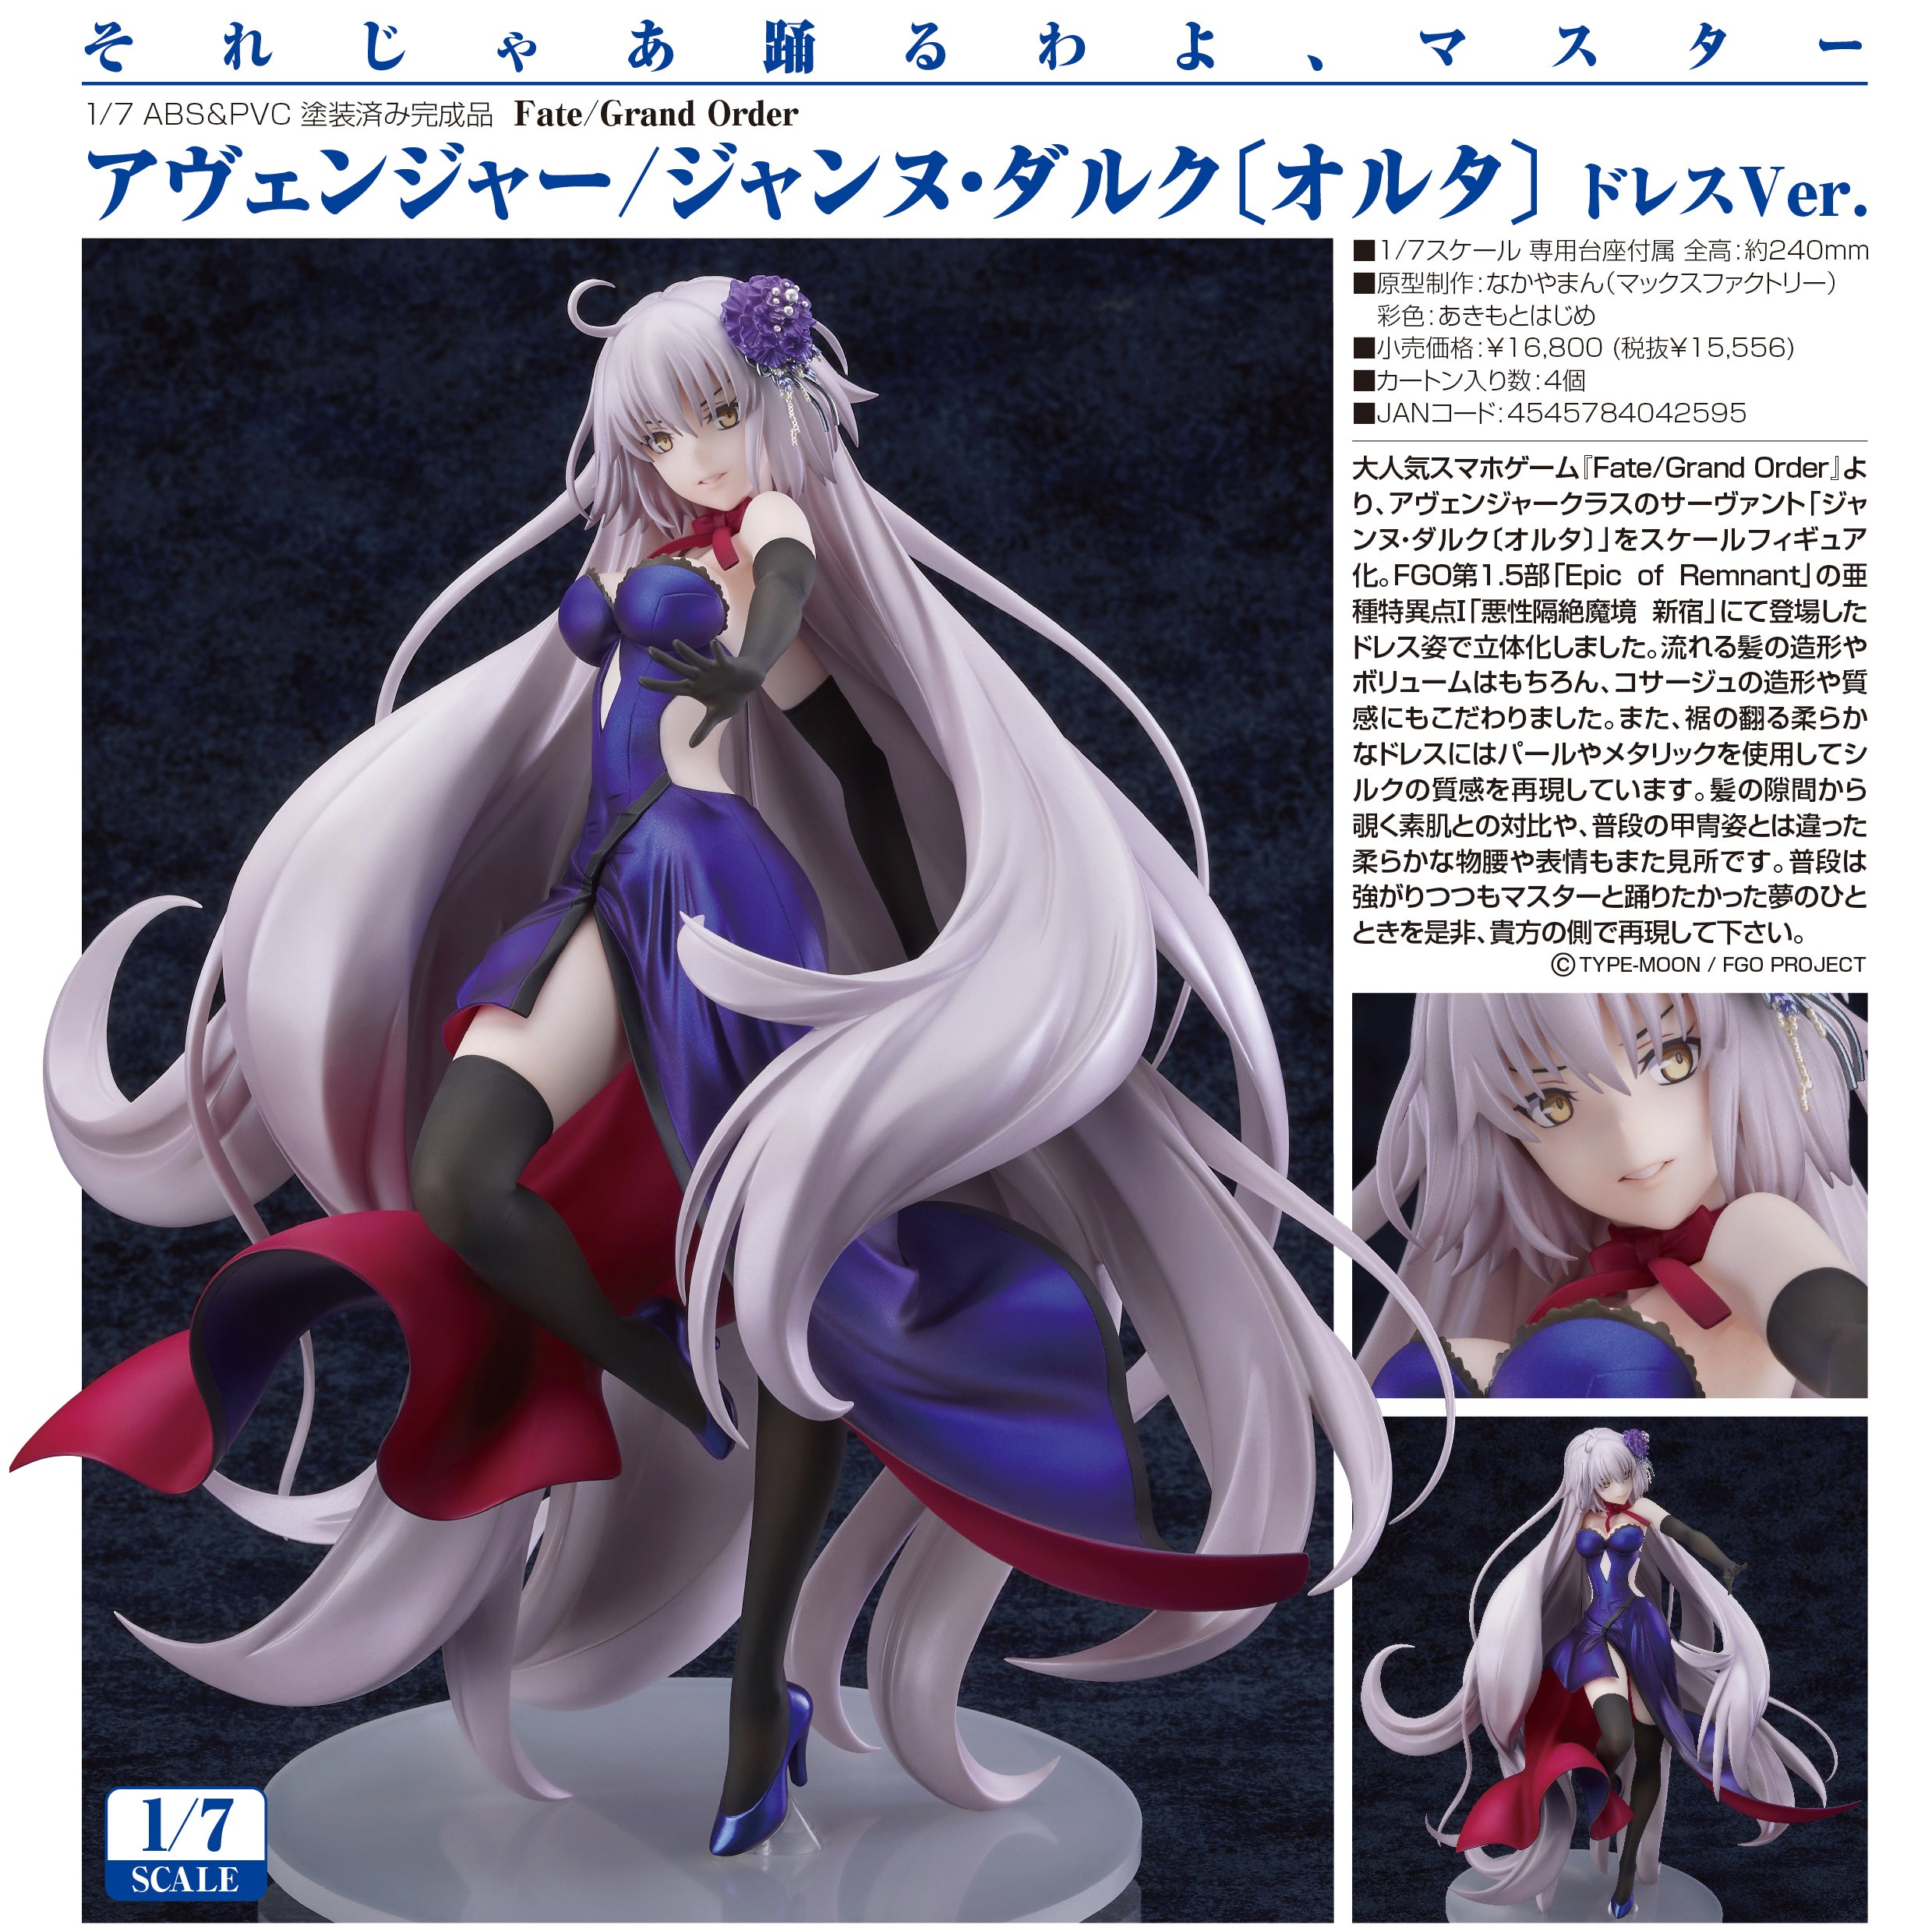 Fate/Grand Order - Jeanne d'Arc (Alter) - 1/7 - Dress Ver., Avenger (Max Factory)